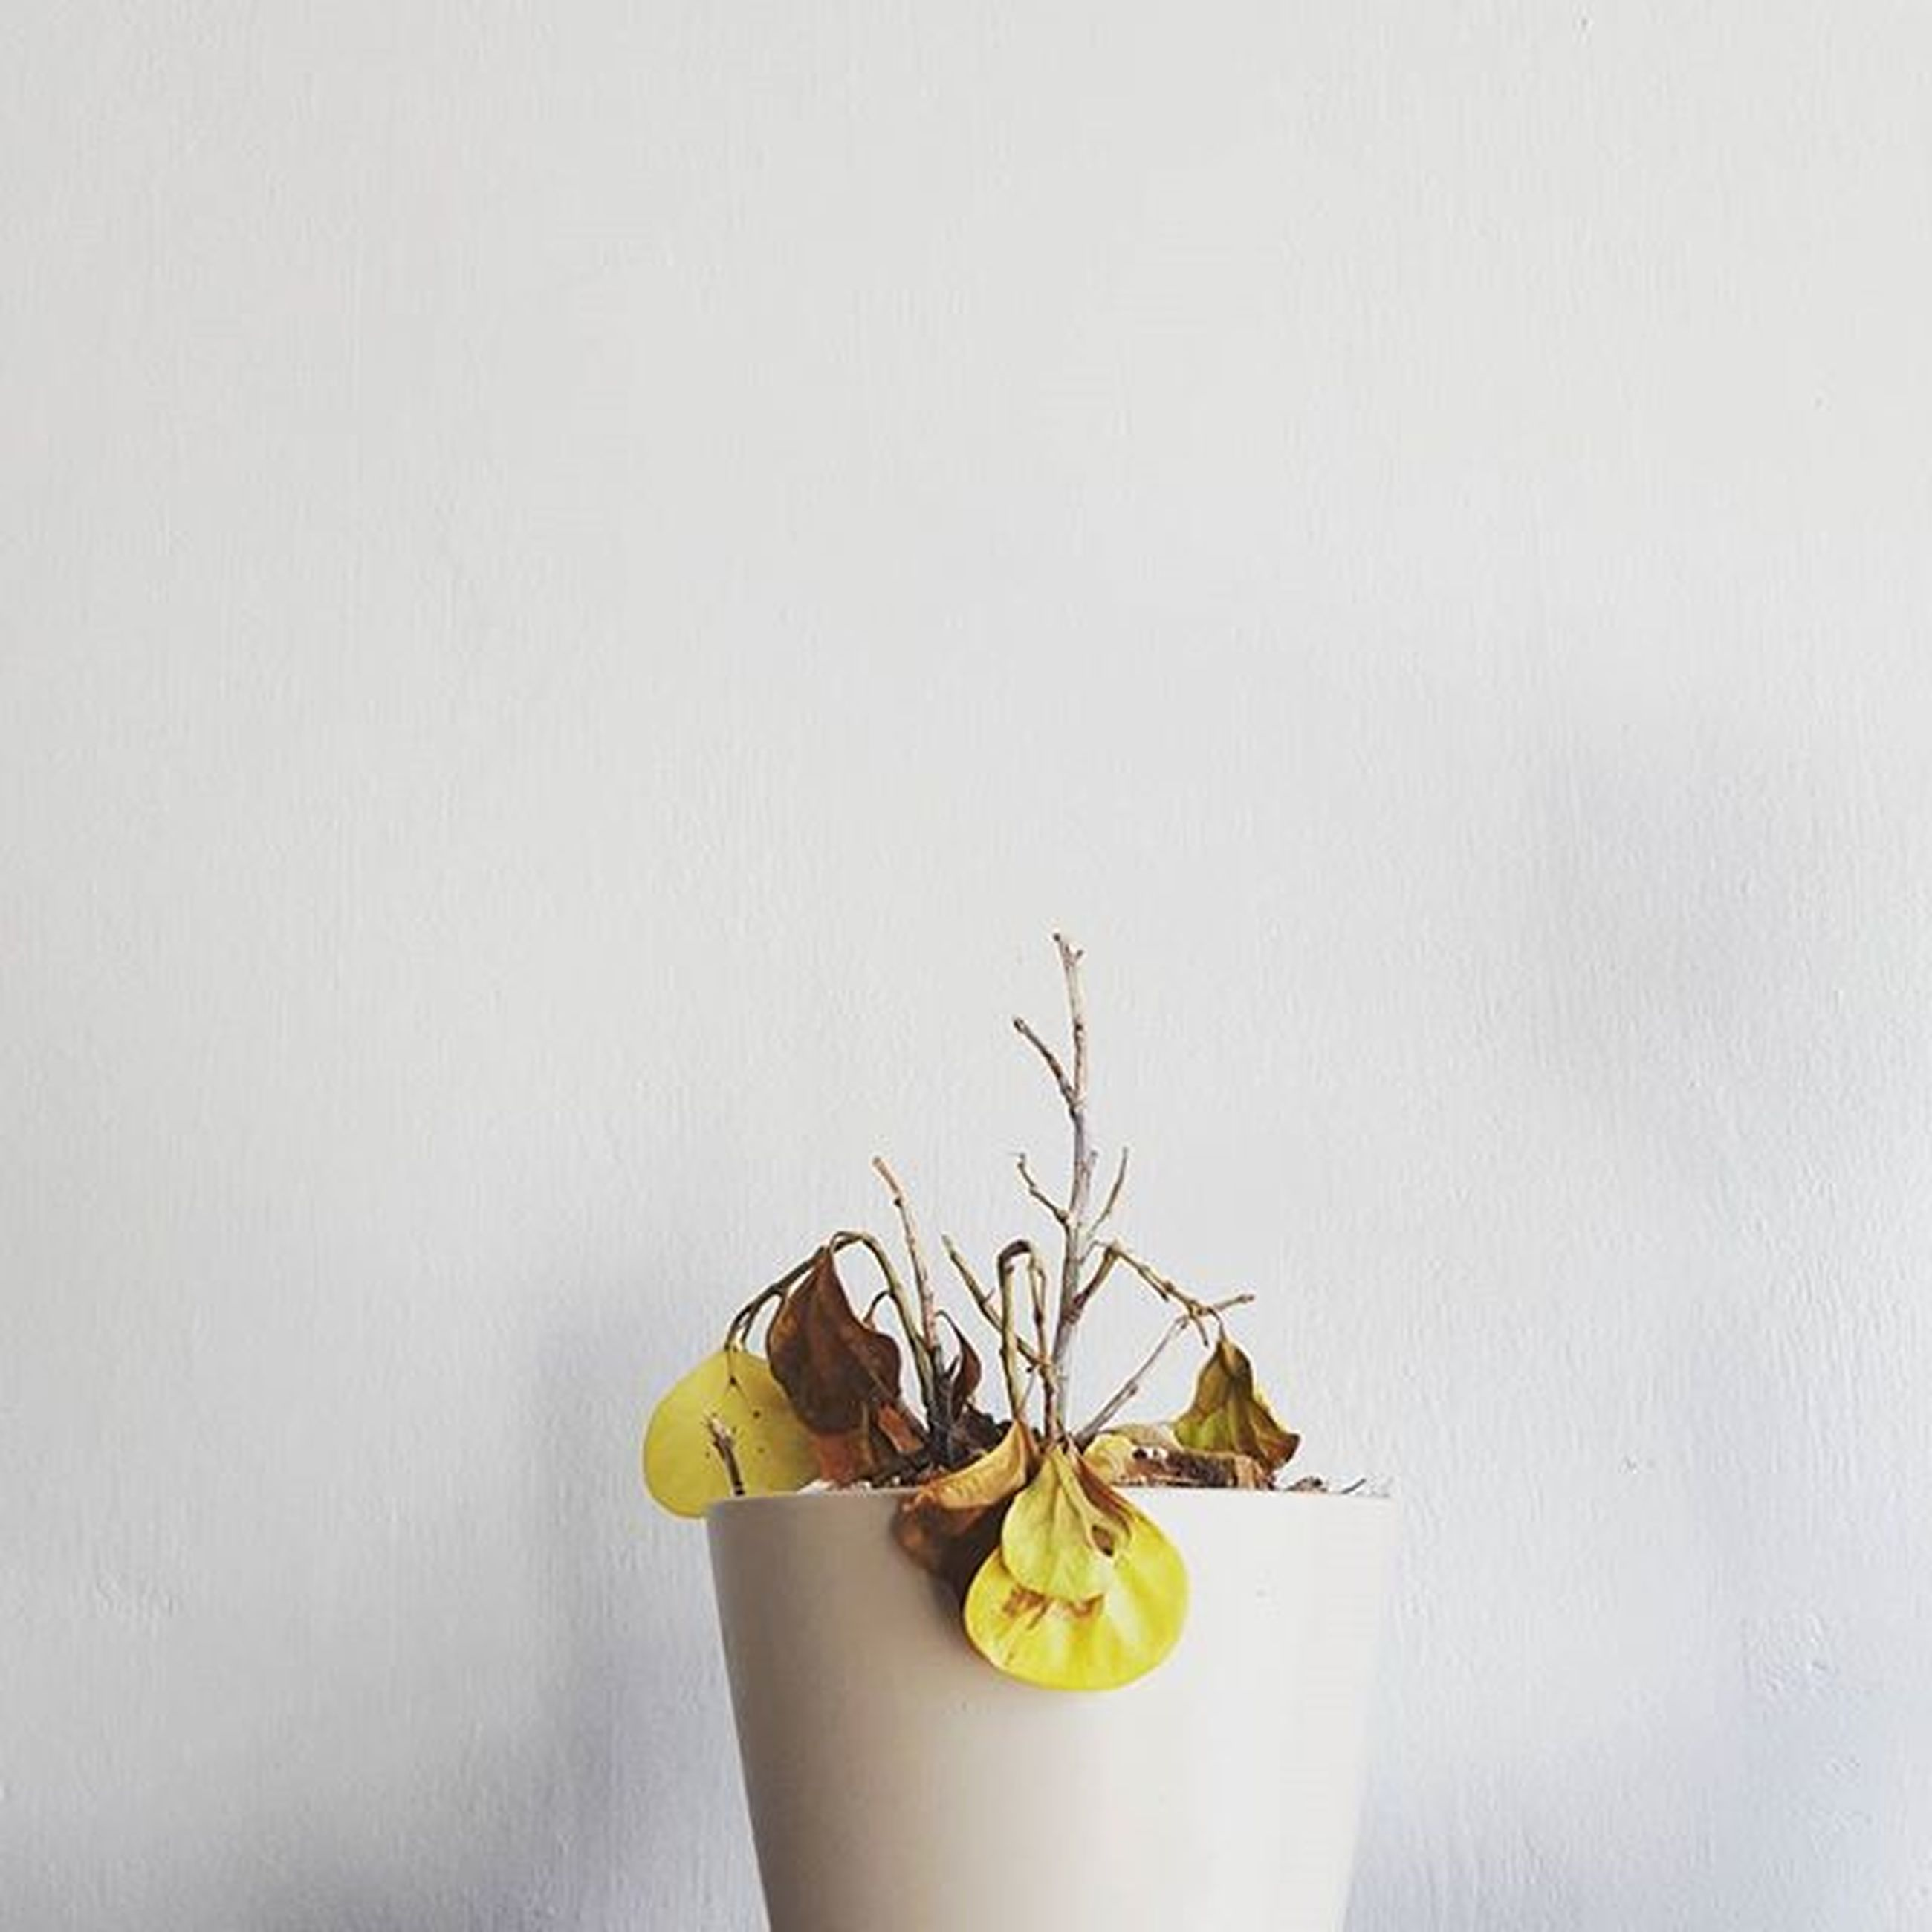 studio shot, copy space, white background, wall - building feature, yellow, indoors, still life, freshness, close-up, flower, wall, table, stem, leaf, vase, no people, single object, decoration, fruit, healthy eating